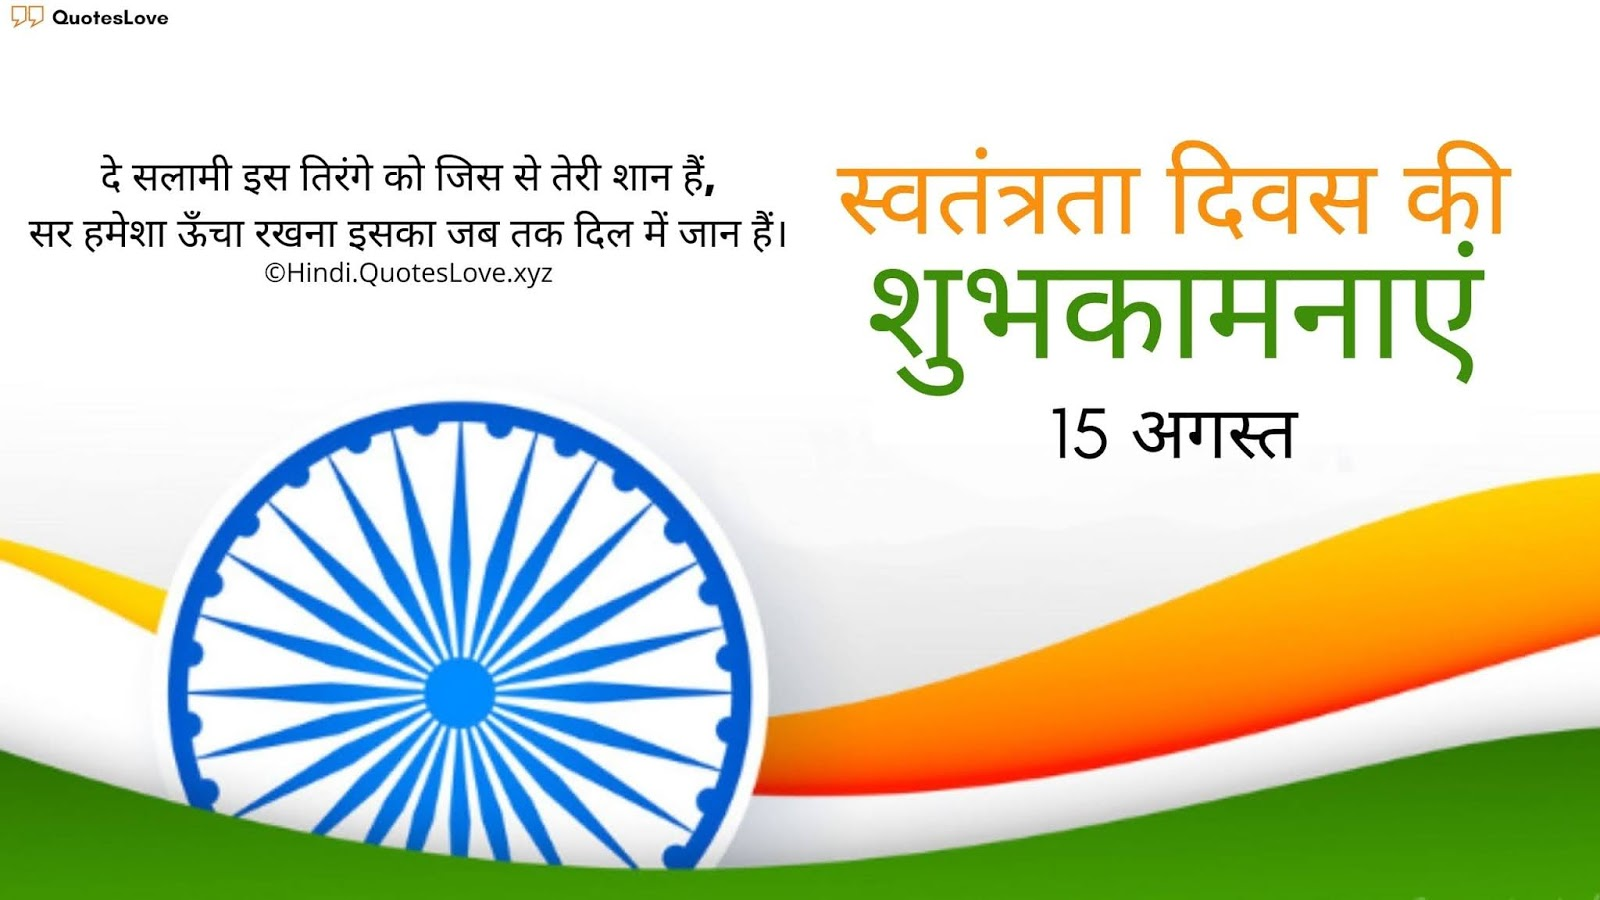 Independence-Day-Quotes-Hindi -Status-Shayari-Images-Pictures-Poster-Wallpaper